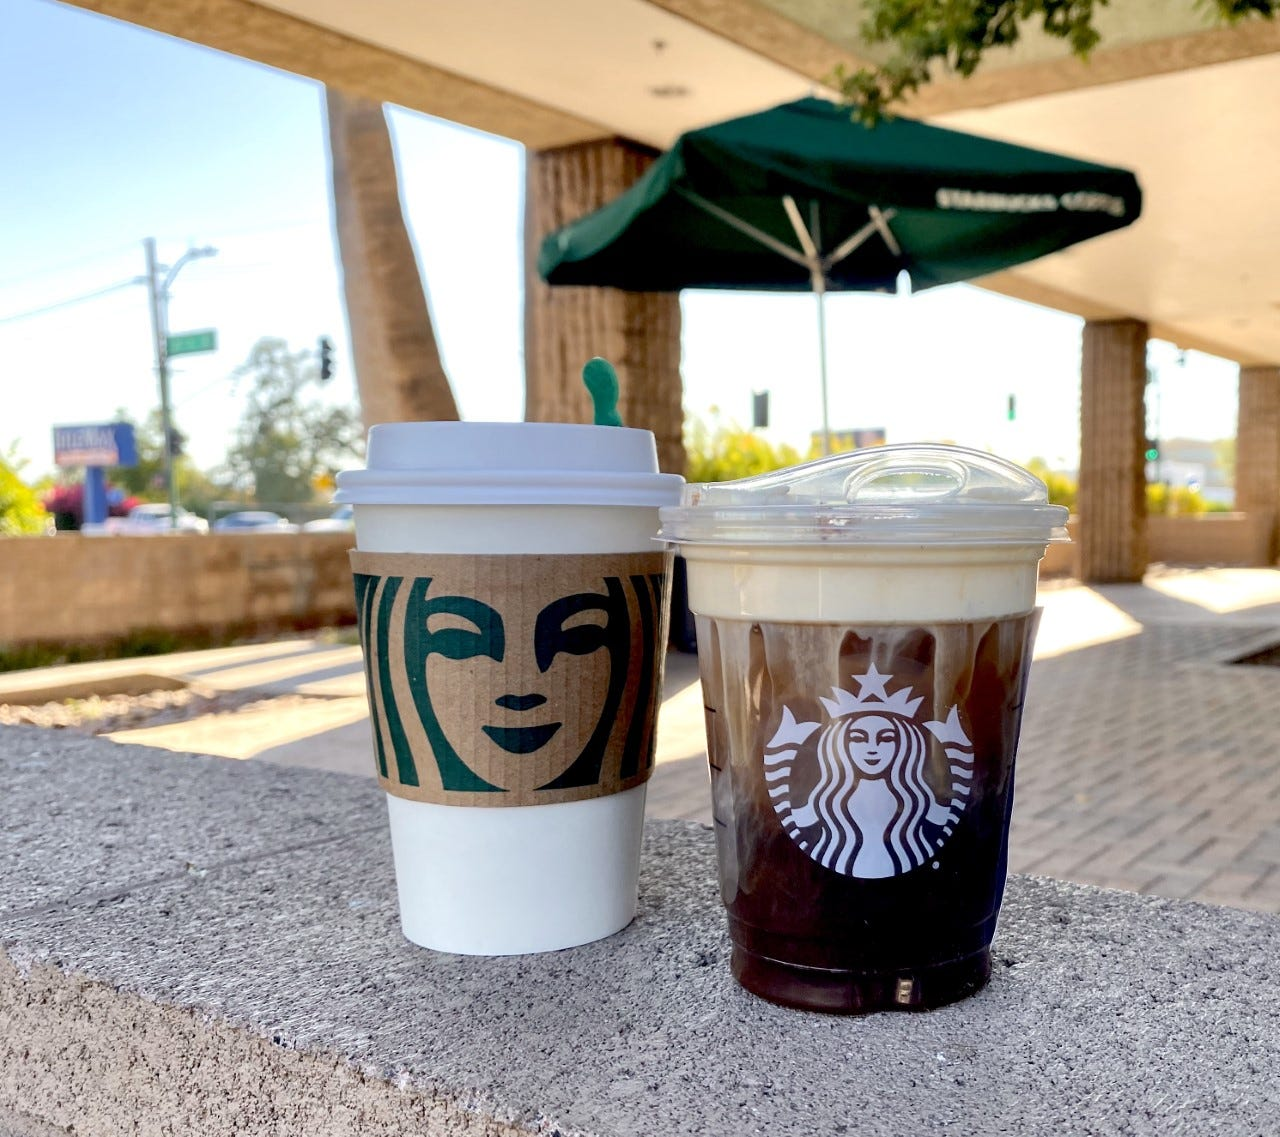 Ranking Starbucks, Dunkin and Dutch Bros' fall pumpkin coffee drinks from worst to best